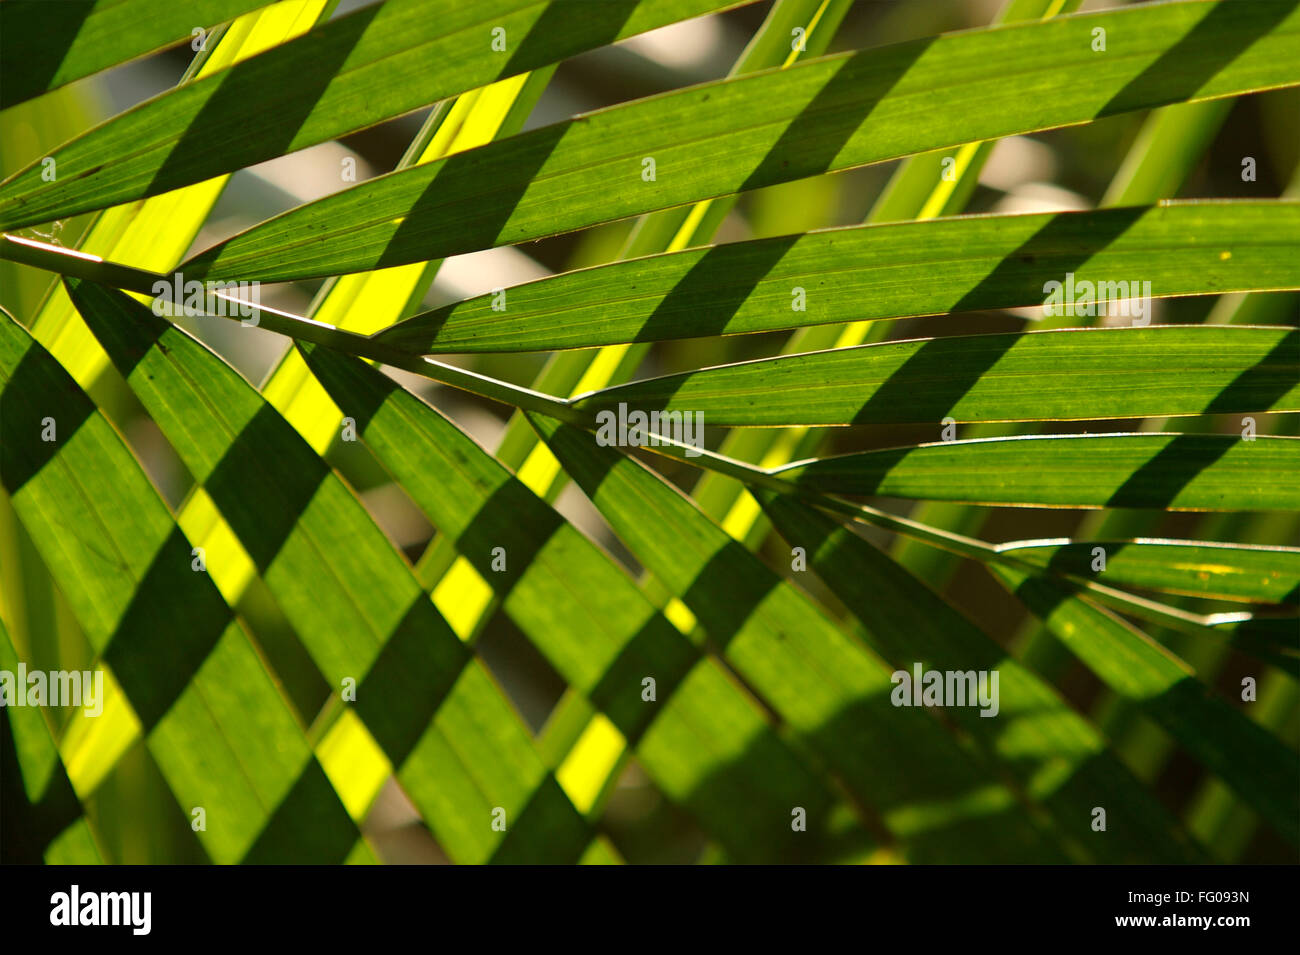 Sunbeam on green chequered palm leaves - Stock Image